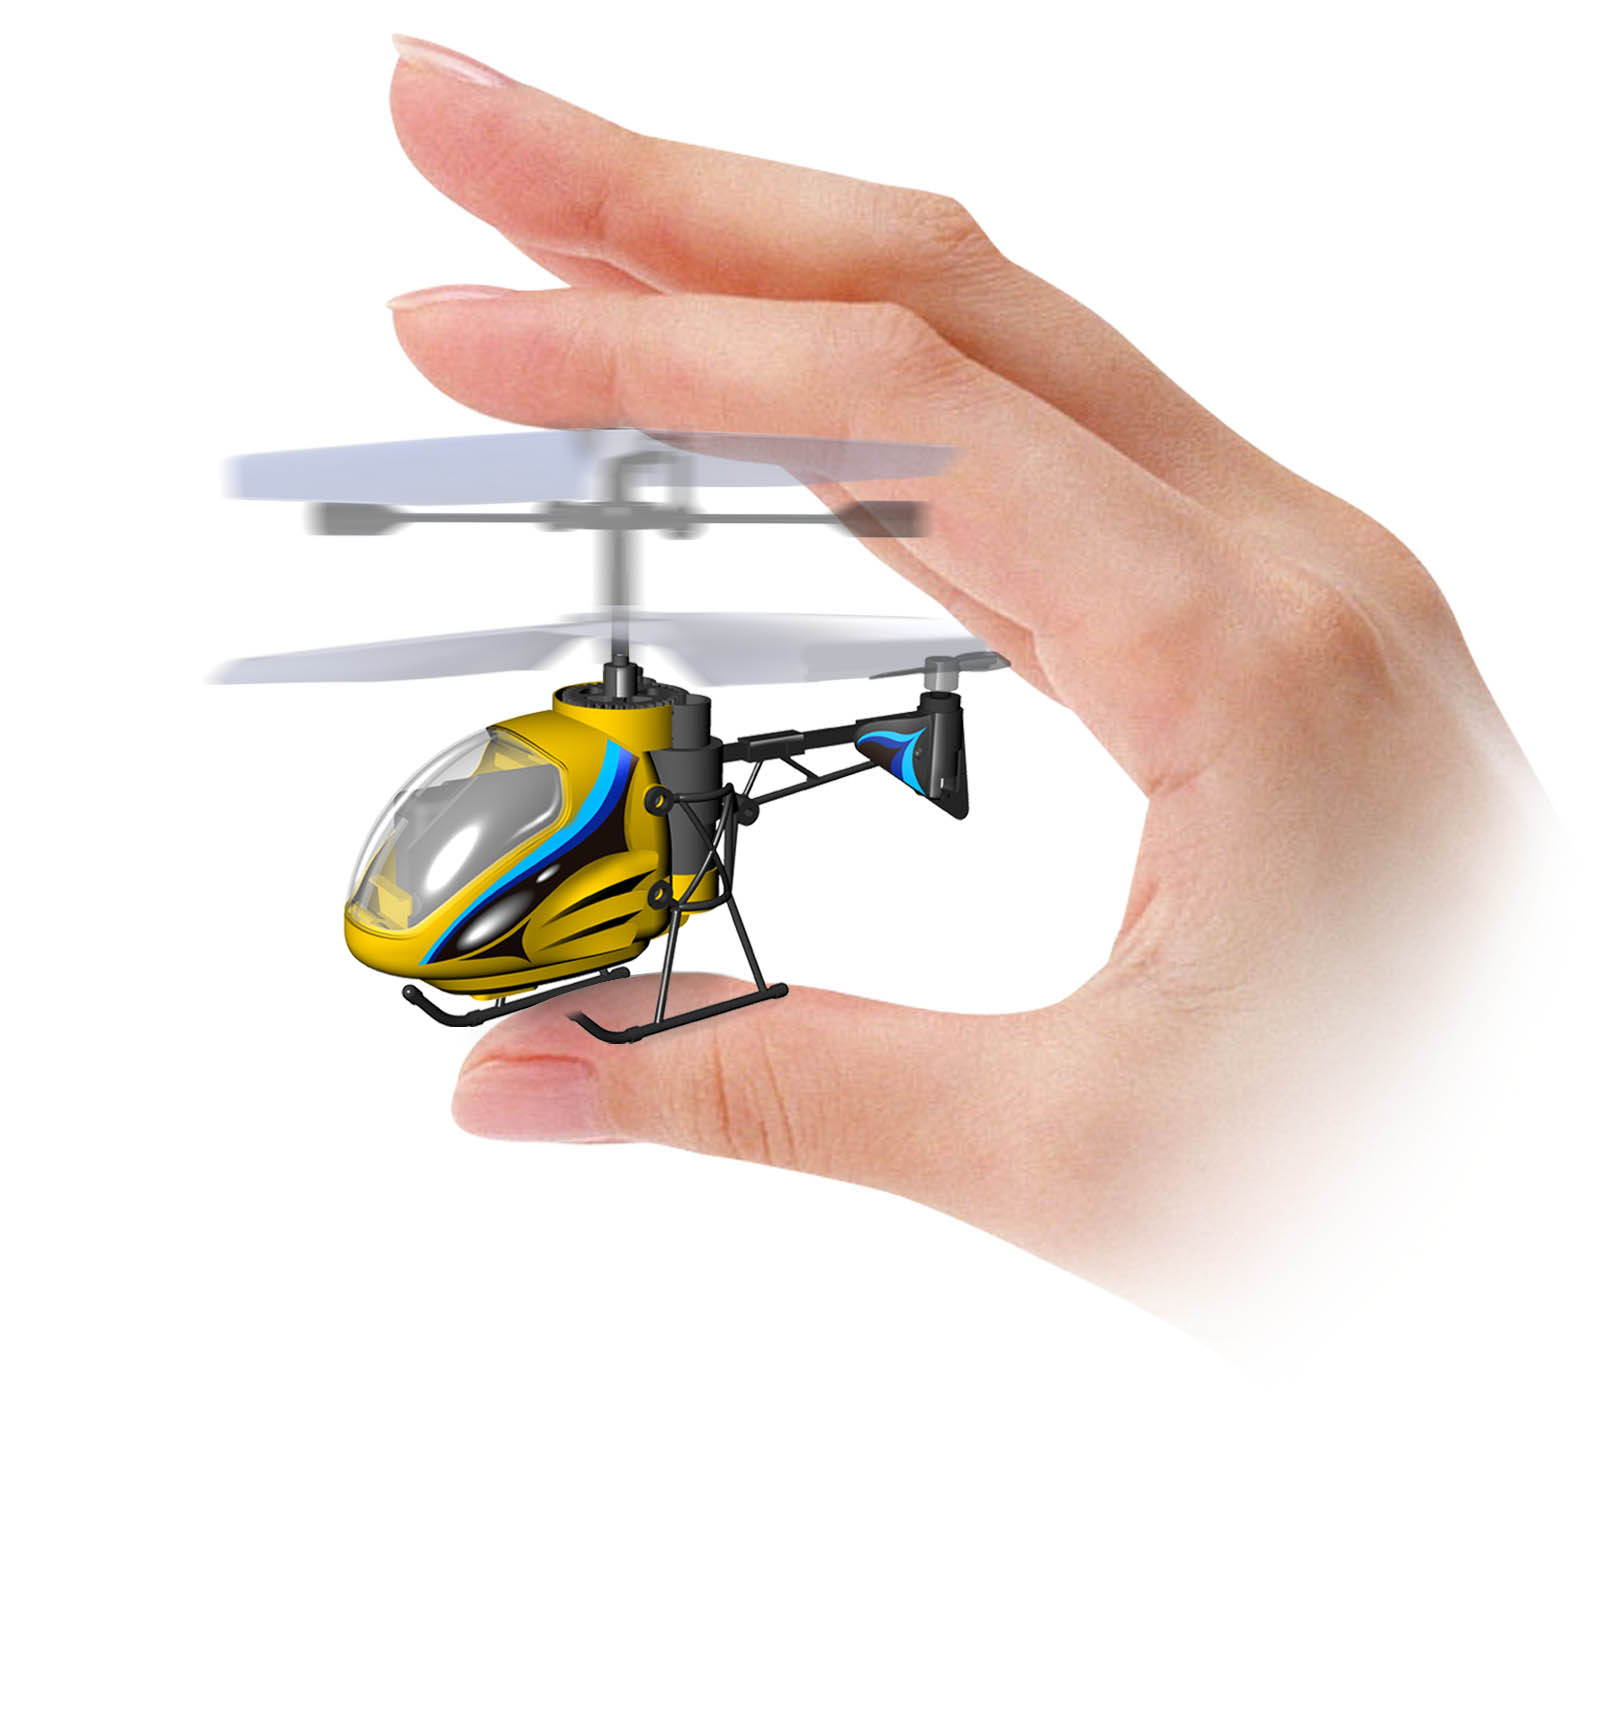 helicopter rc kit with Silverlit Picooz Selected For Amazons 15 Best Selling Toys Of All Time on Watch together with Opel GT furthermore Cmp076 Fairchild Pt19 Kit in addition Hpi Porsche 911 Gt3 Rs Rc Car Lights moreover 2exrcch47tar.